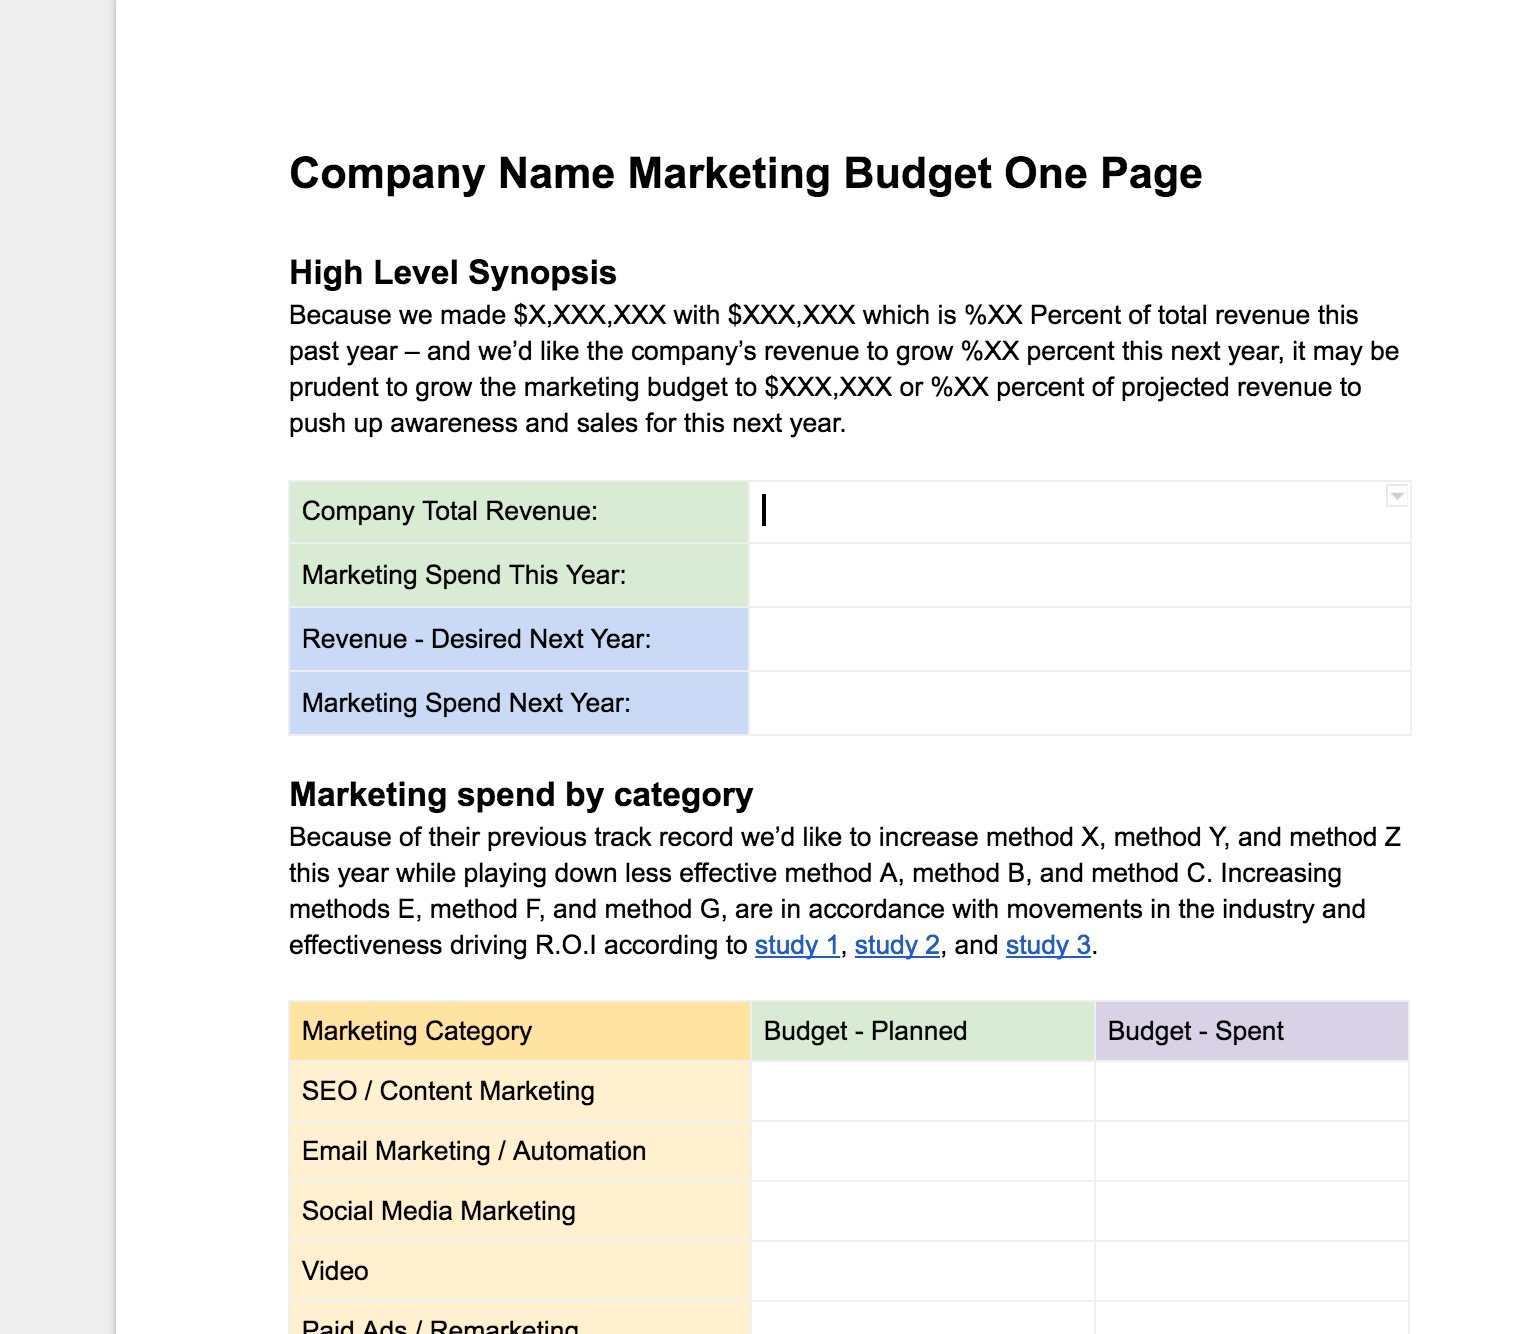 Easy Free Marketing Budgeting One Page Template